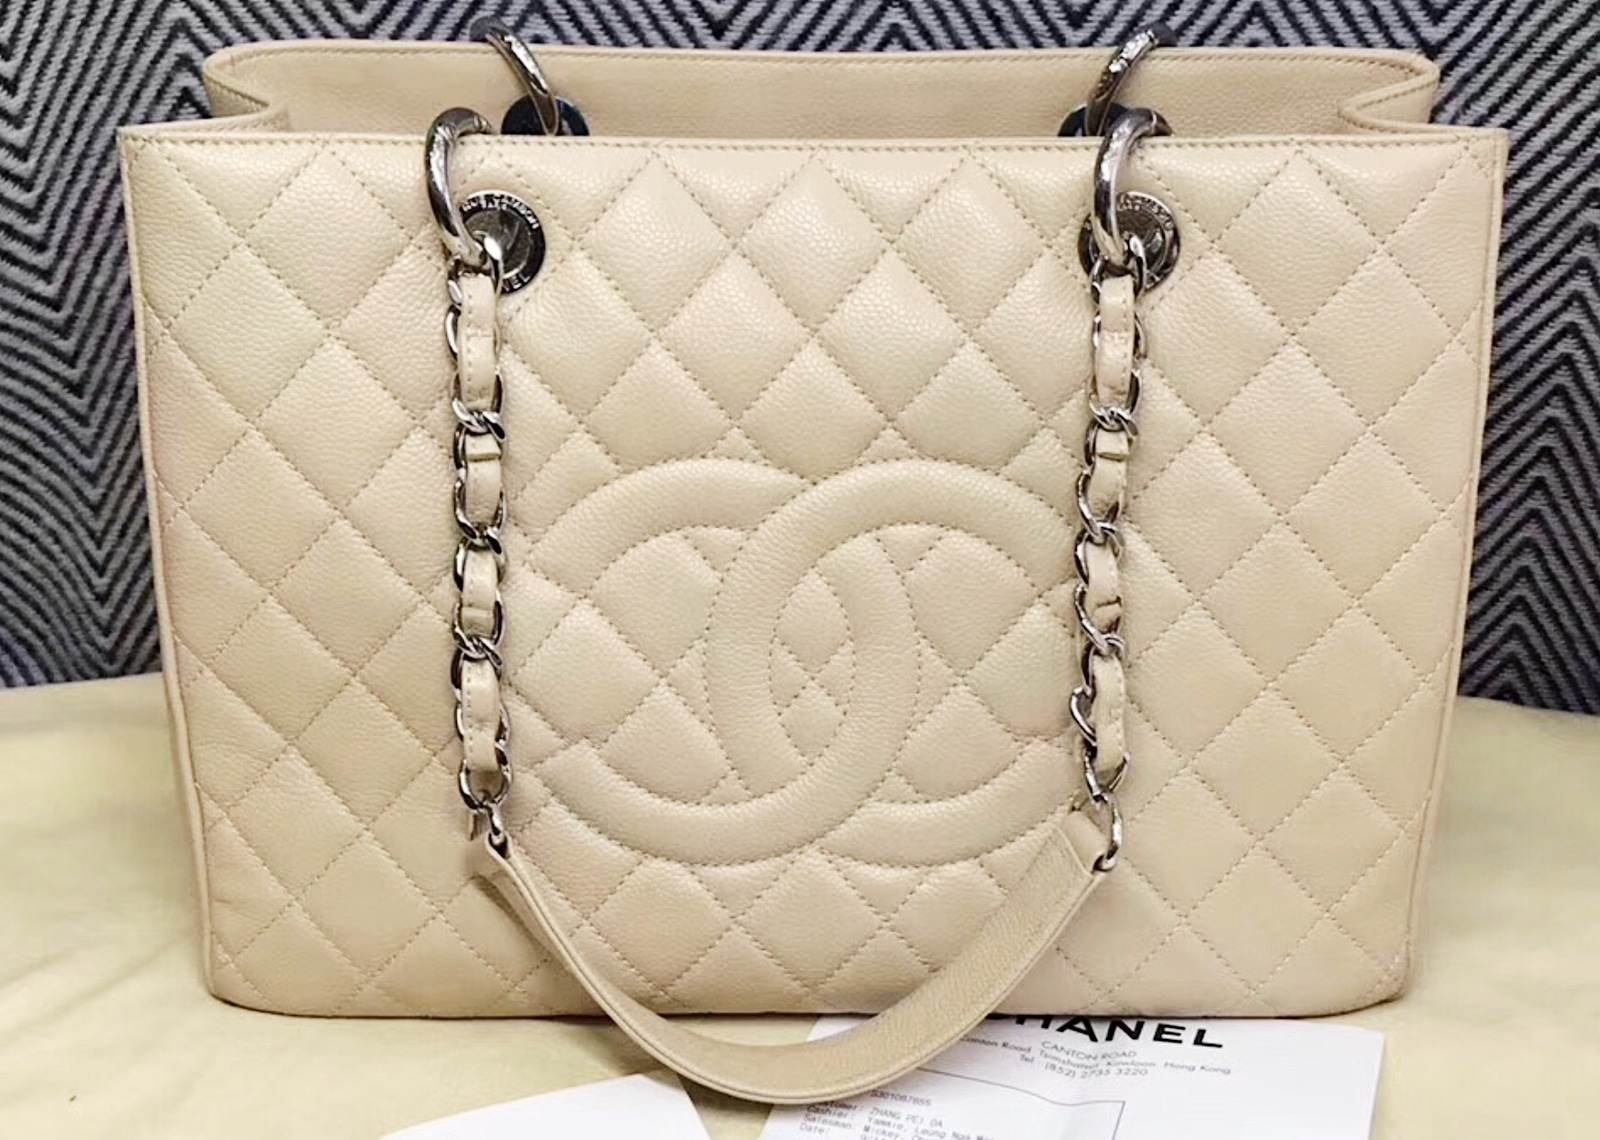 AUTHENTIC CHANEL QUILTED CAVIAR GST GRAND SHOPPING TOTE BAG BEIGE SHW RECEIPT